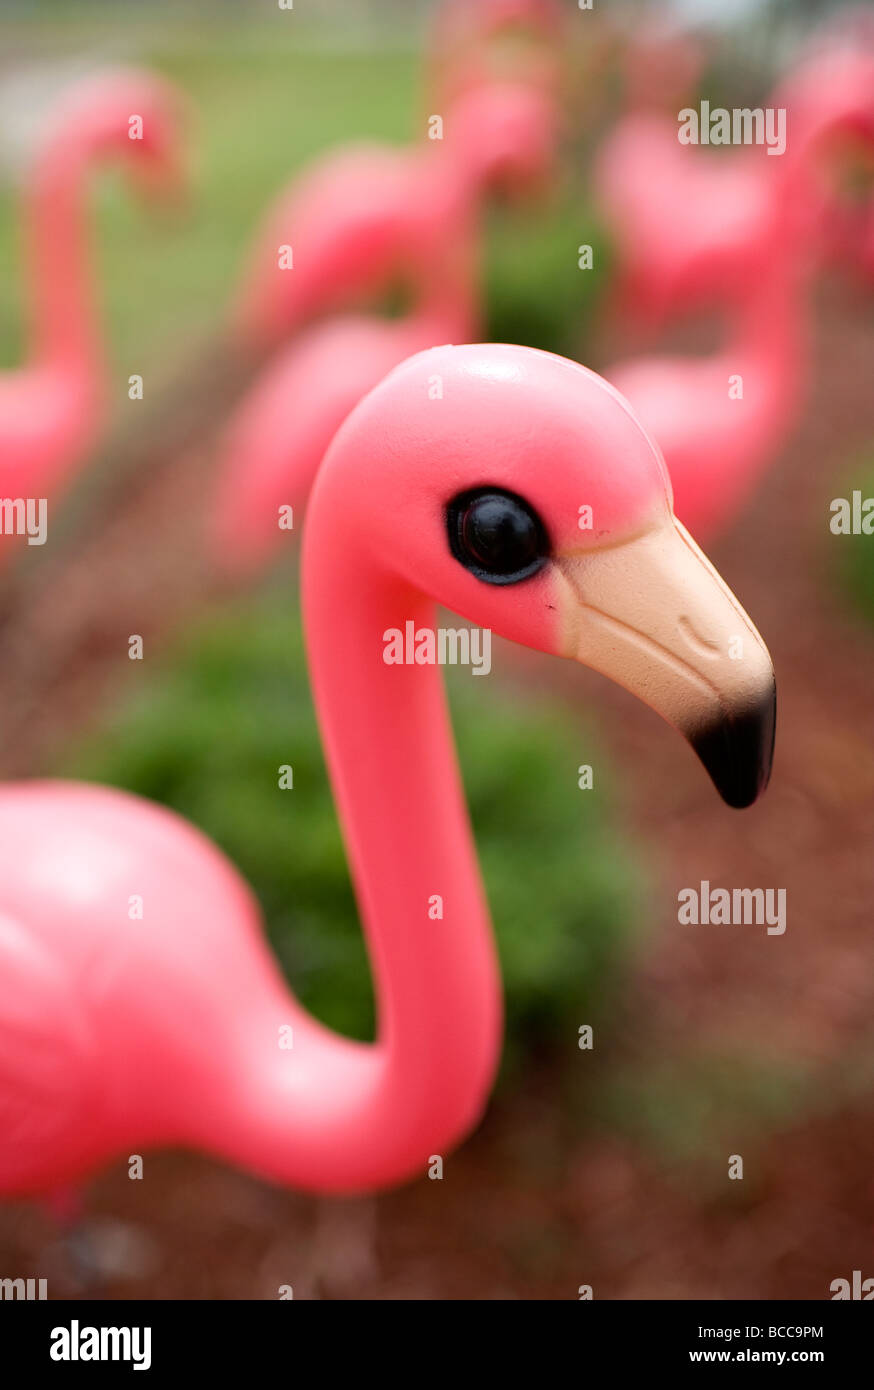 A flock of plastic pink flamingo decorate a lawn. - Stock Image